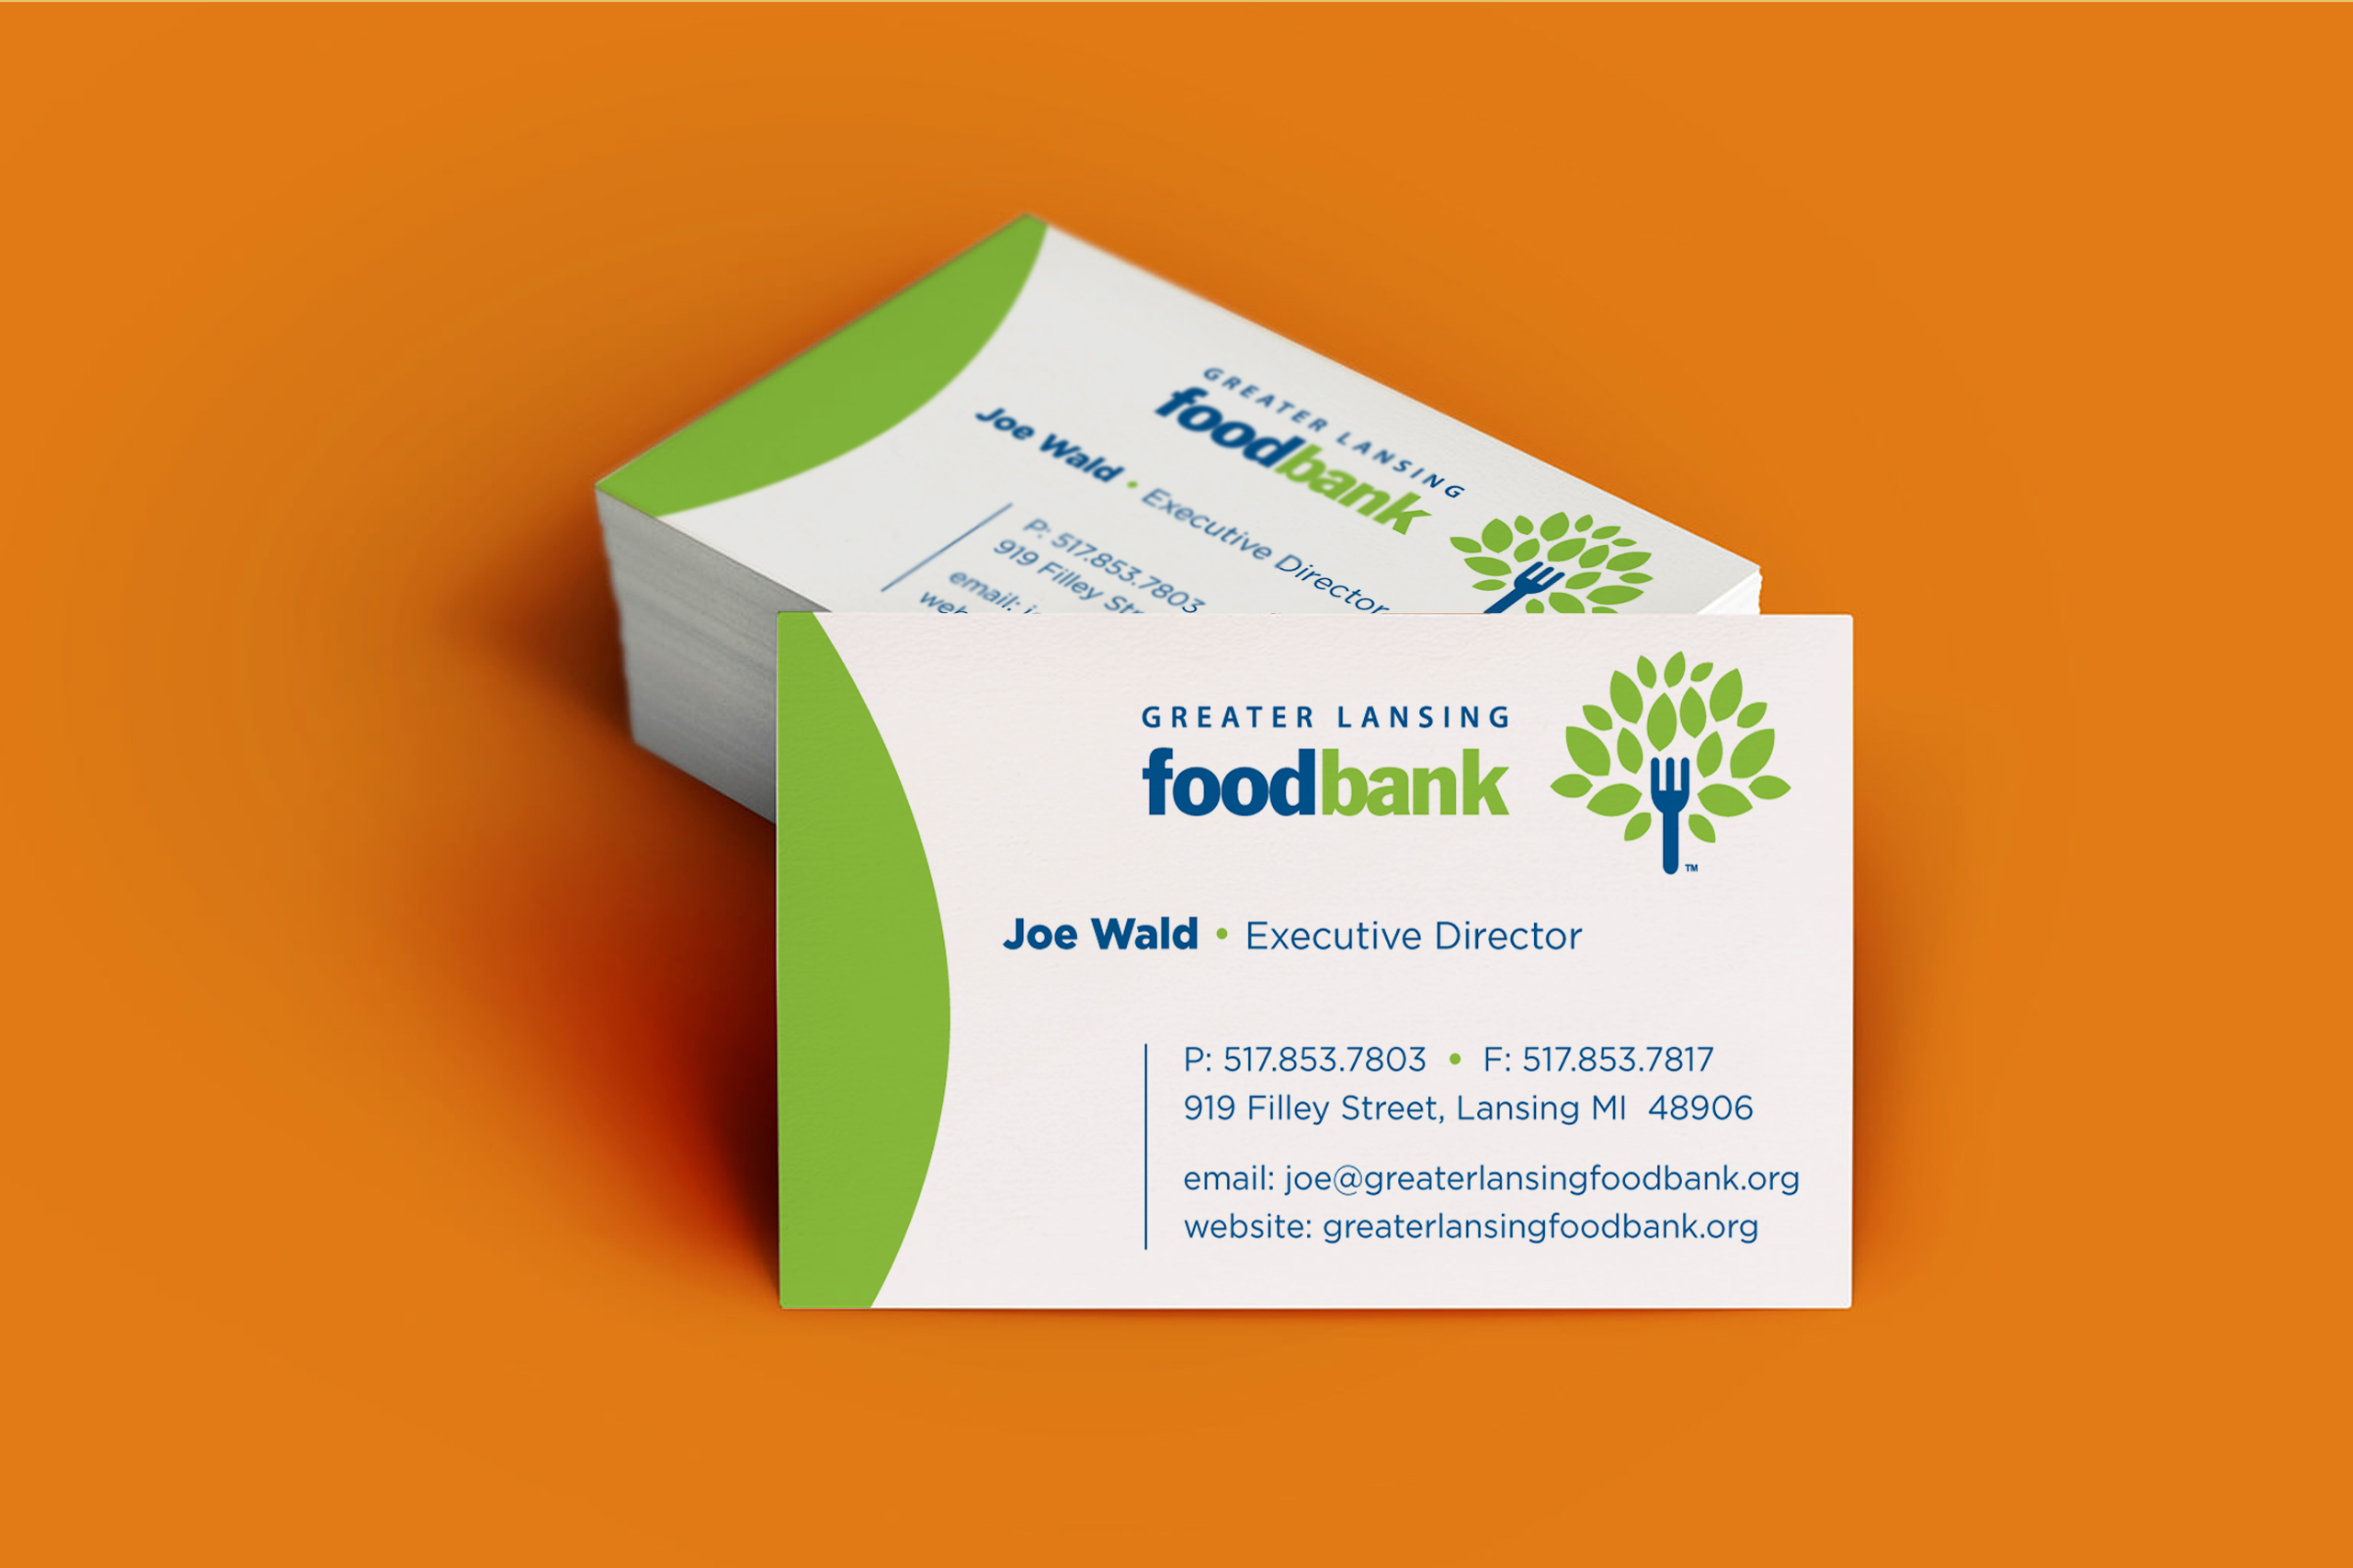 GLFB Business Cards - Blohm Creative Partners